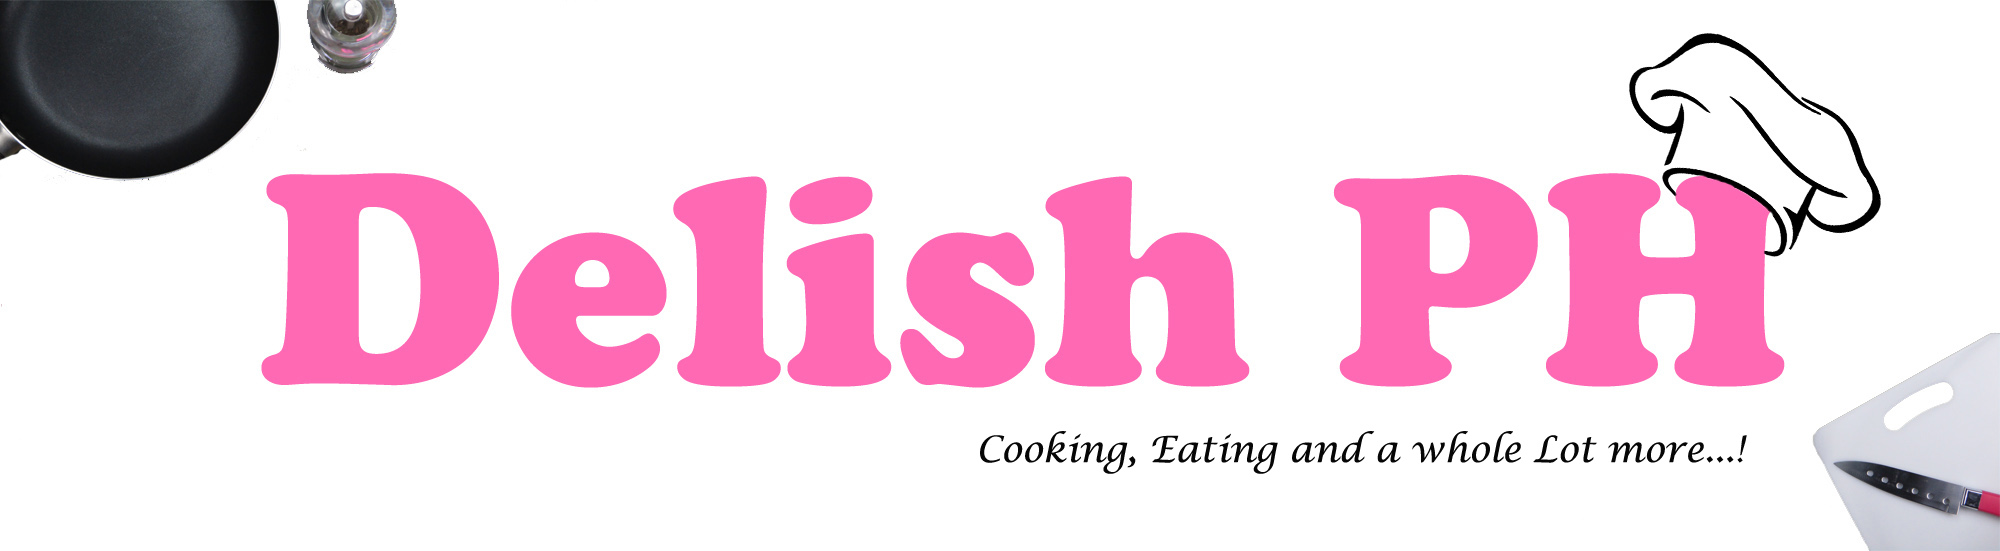 Delish PH - Cooking, eating and a whole lot more...!